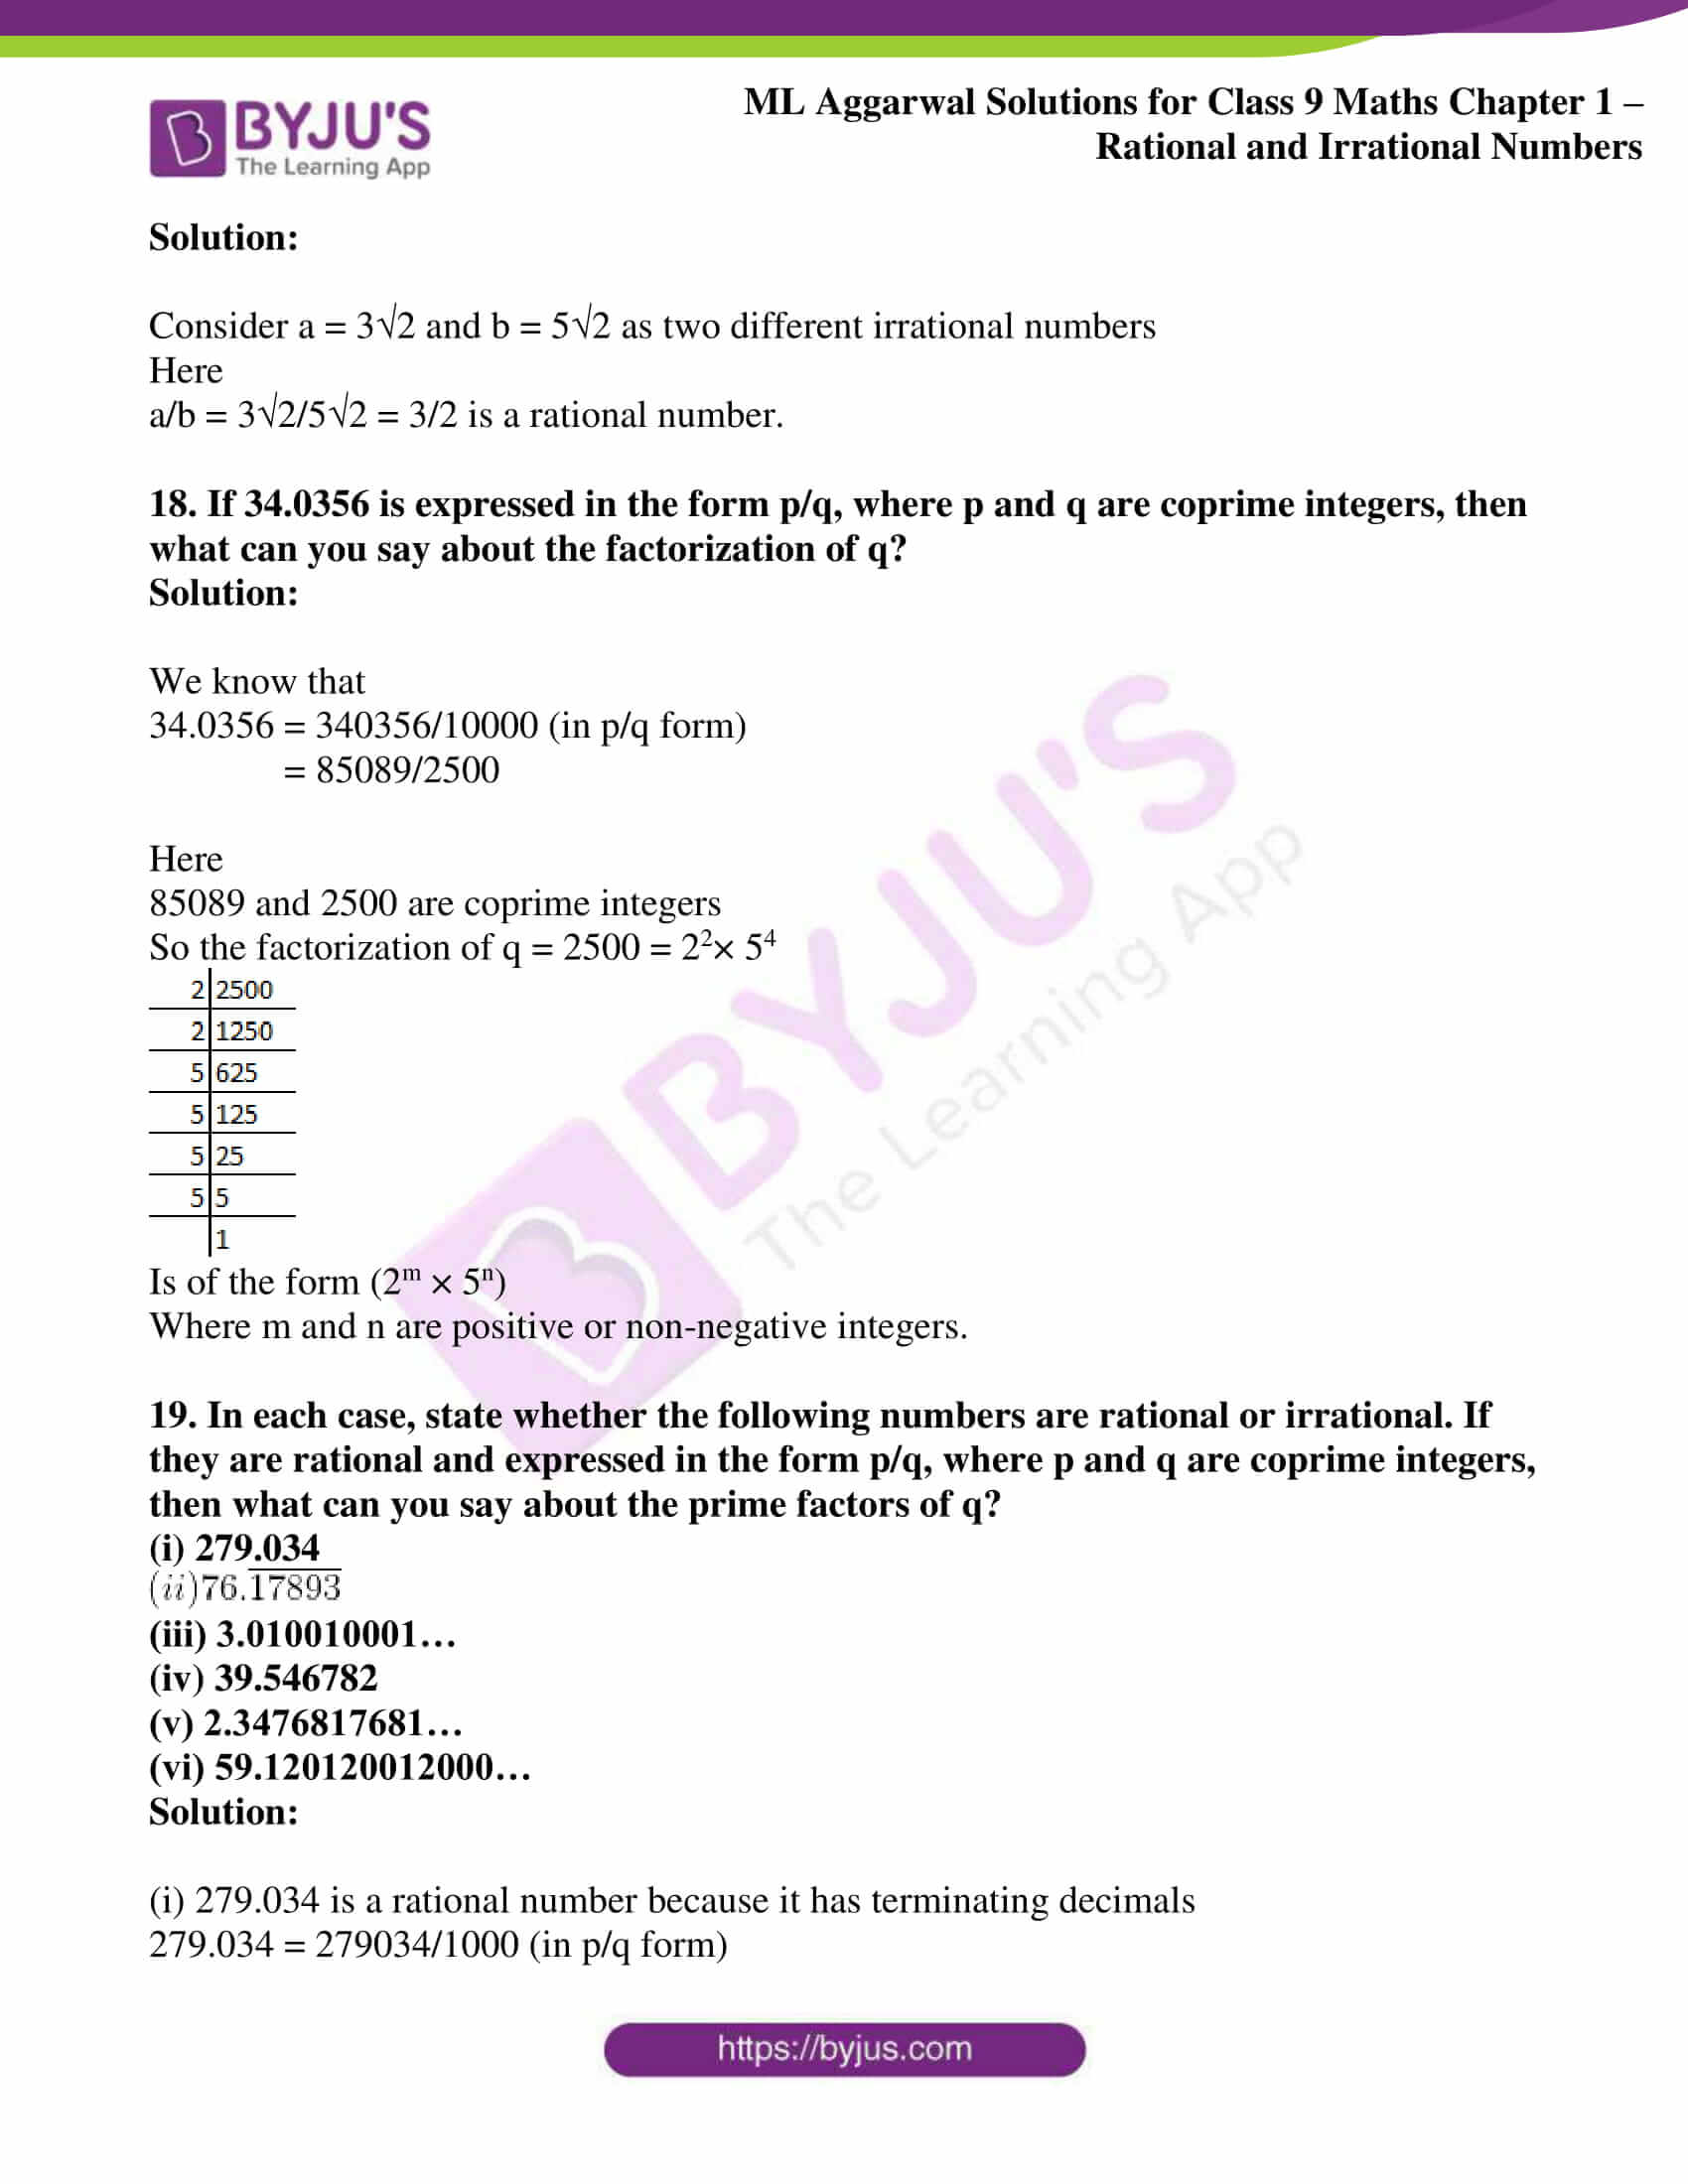 ml aggarwal solutions for class 9 maths chapter 1 80